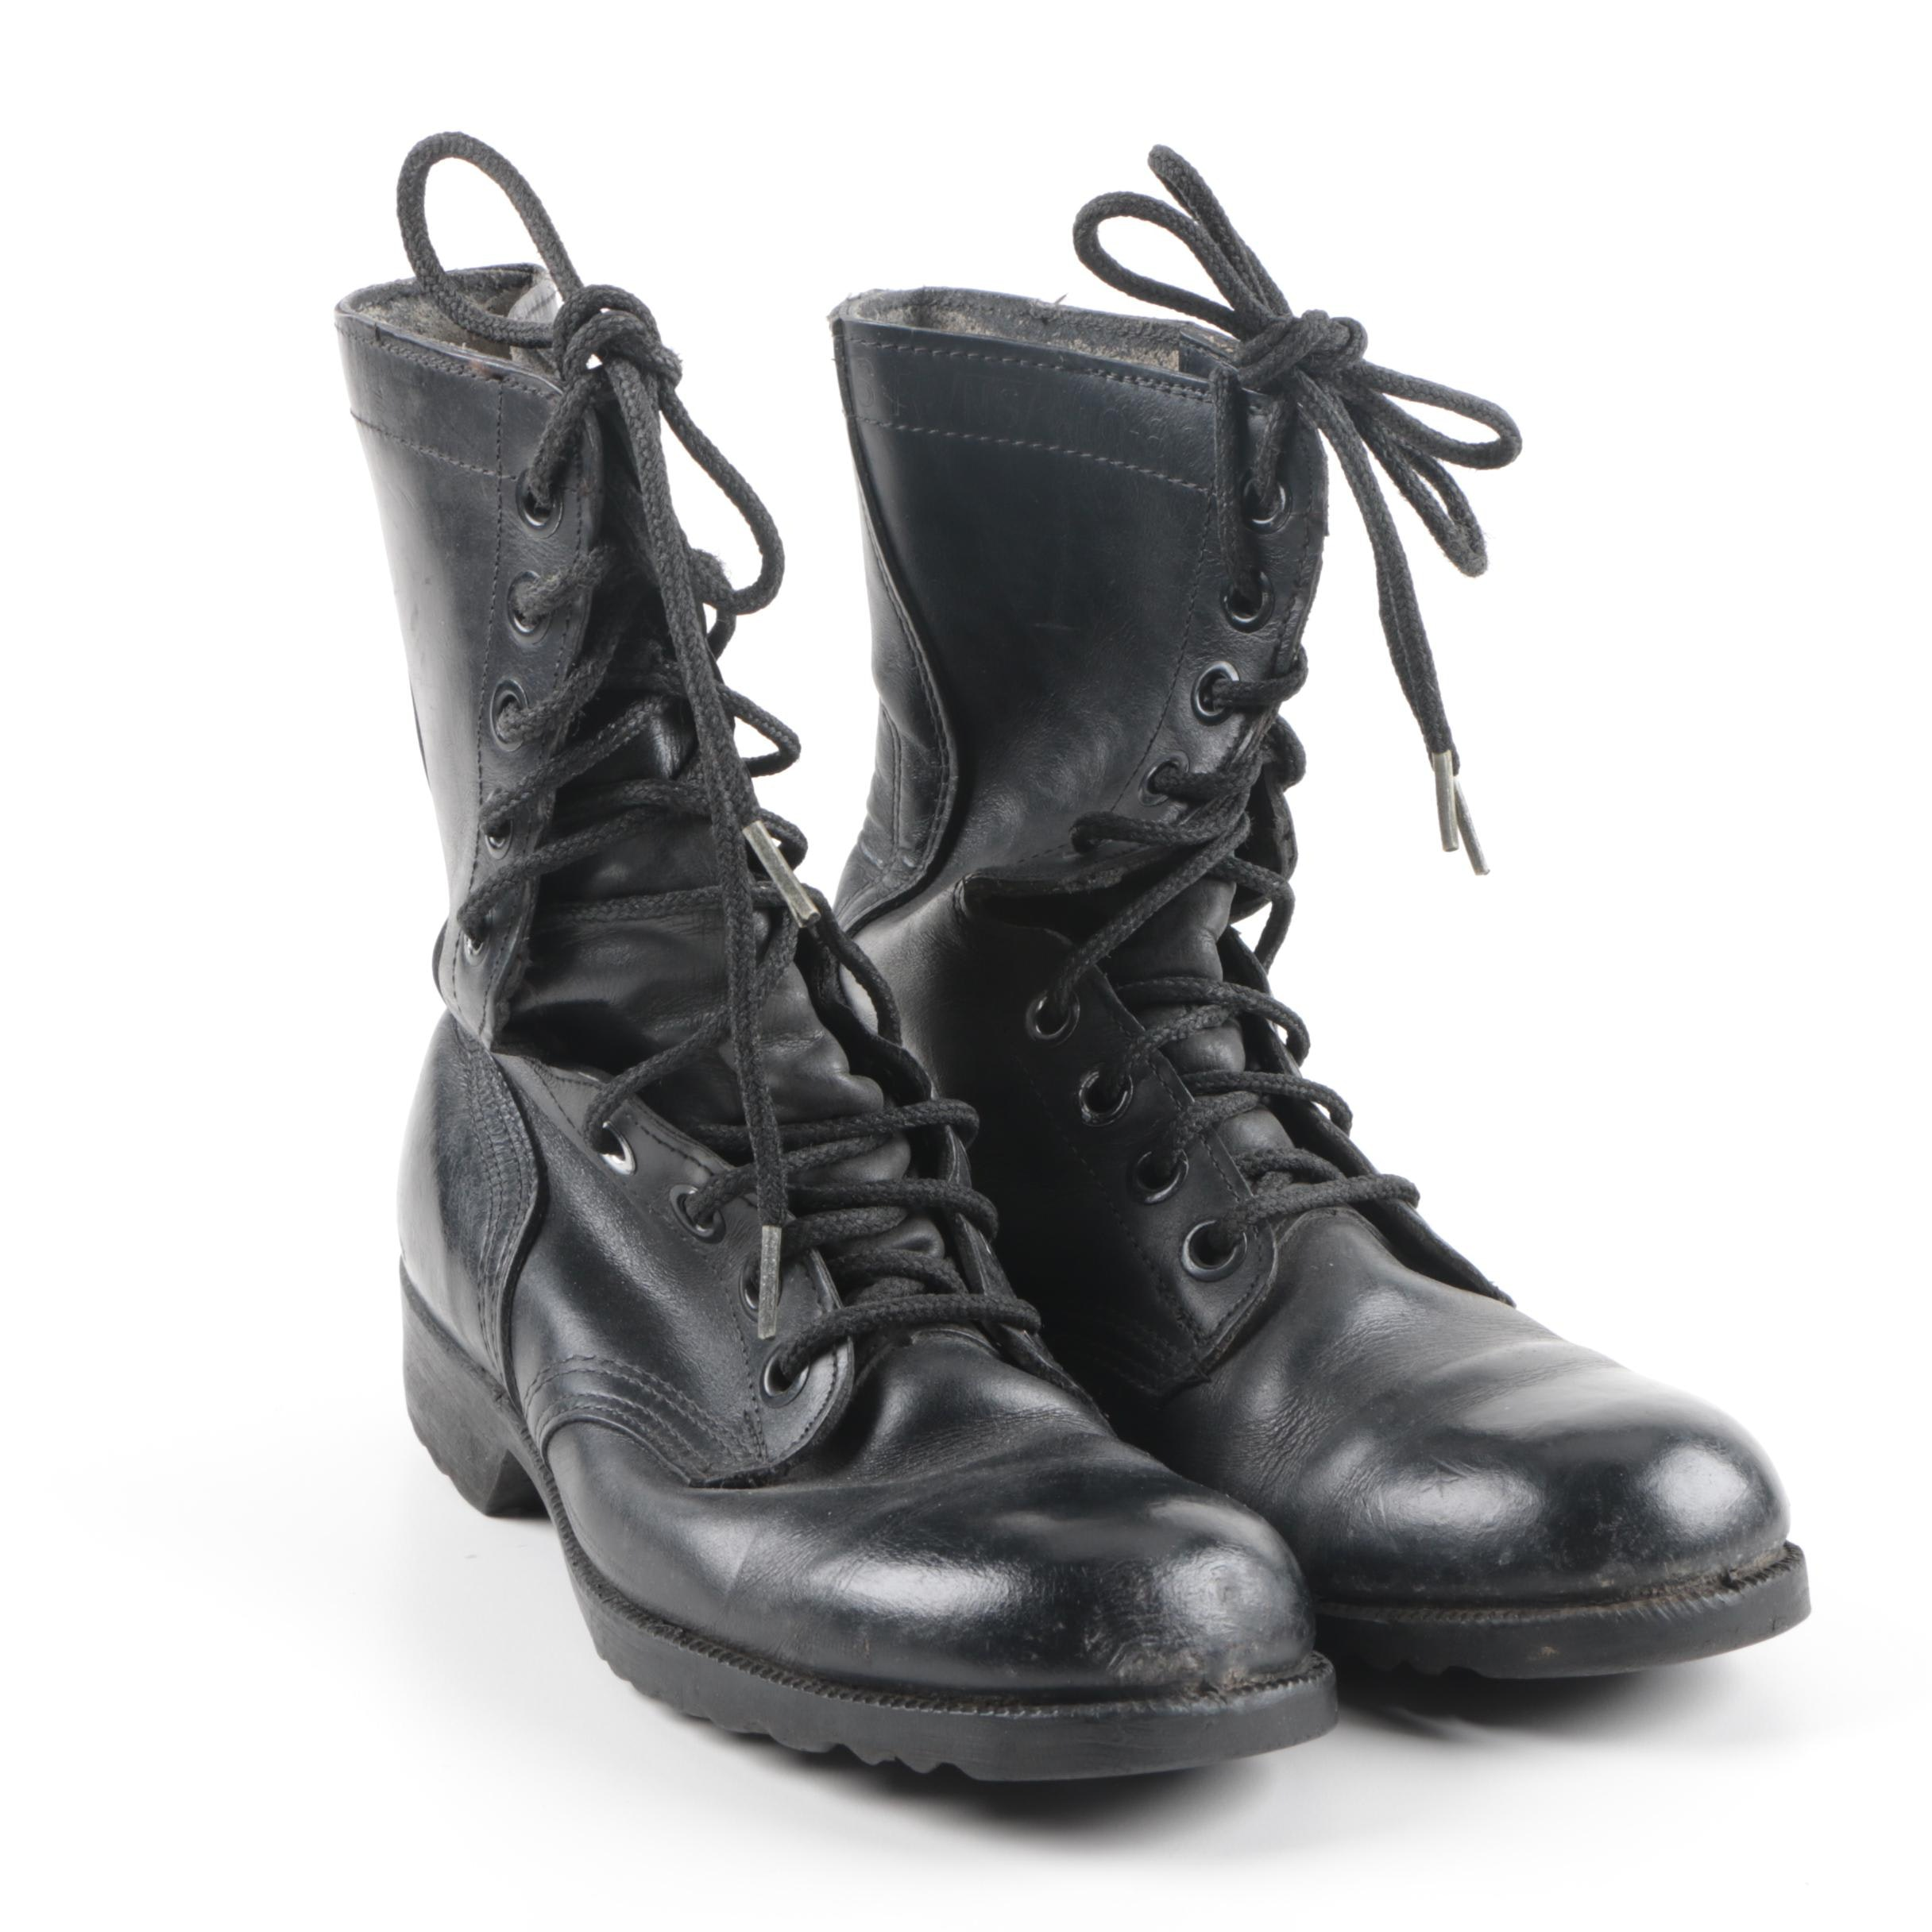 Vintage Black Military Boots by Ro-Search